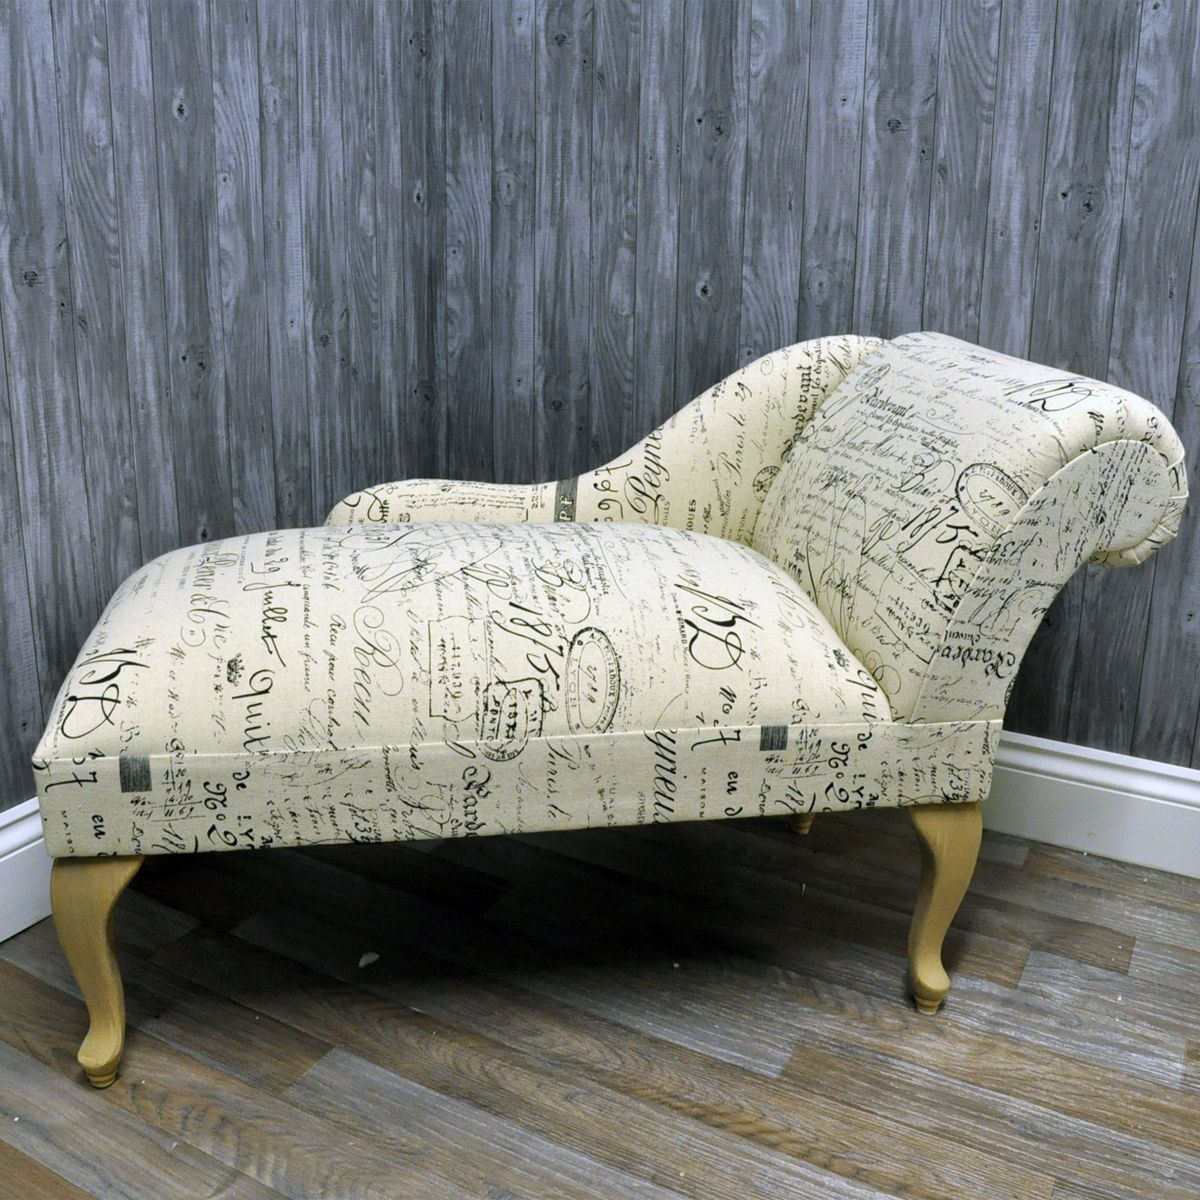 Printed Linen Calligraphy Script Chaise Longue Sofa : mini chaise lounge chairs - Sectionals, Sofas & Couches